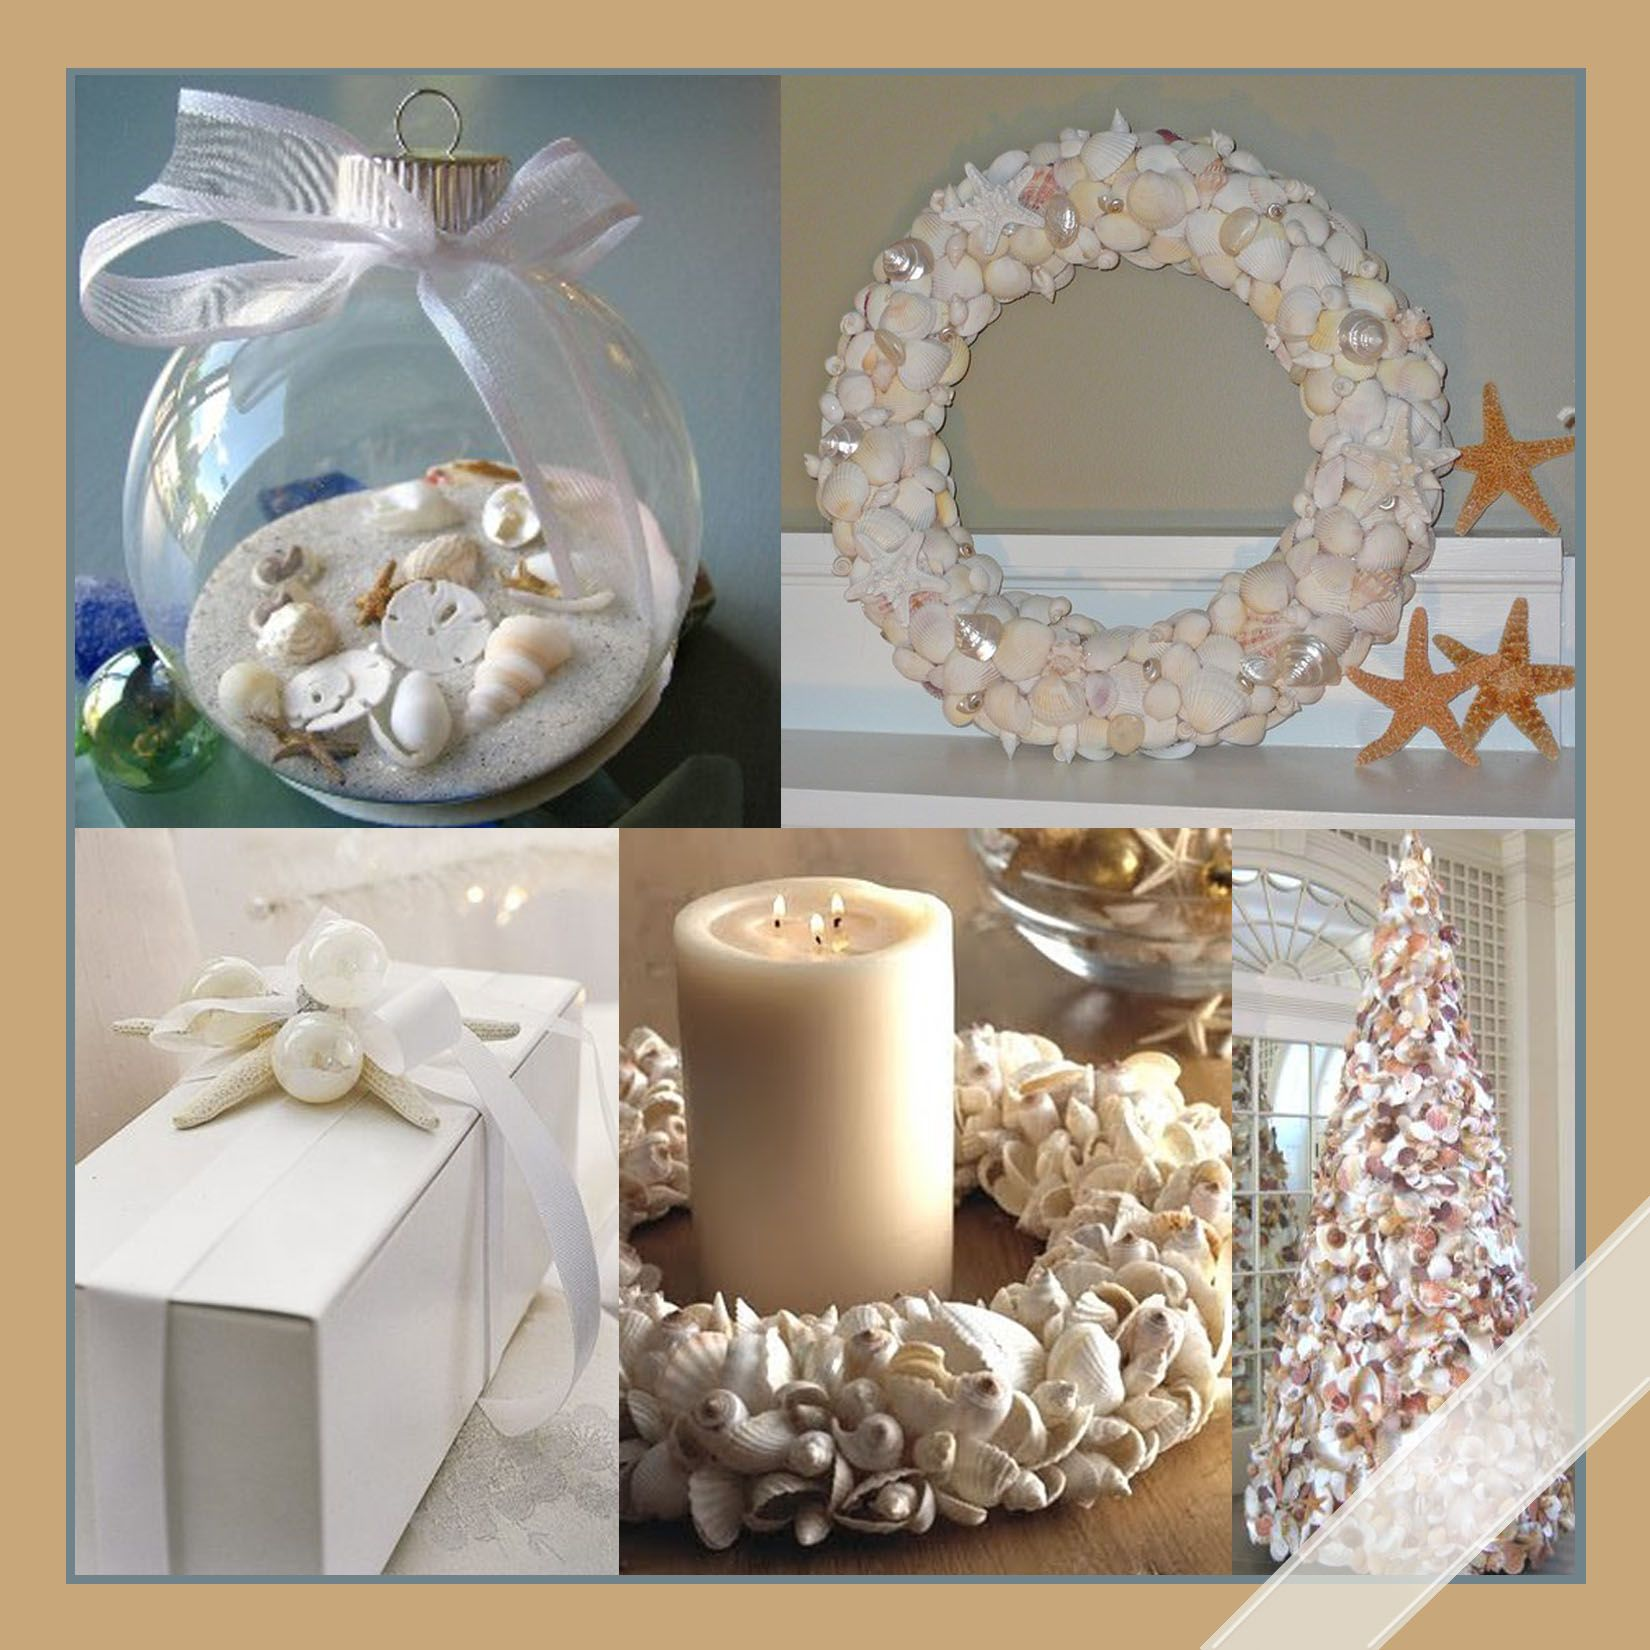 beach items for decorating beach theme christmas decor ideas - Ocean Themed Home Decor